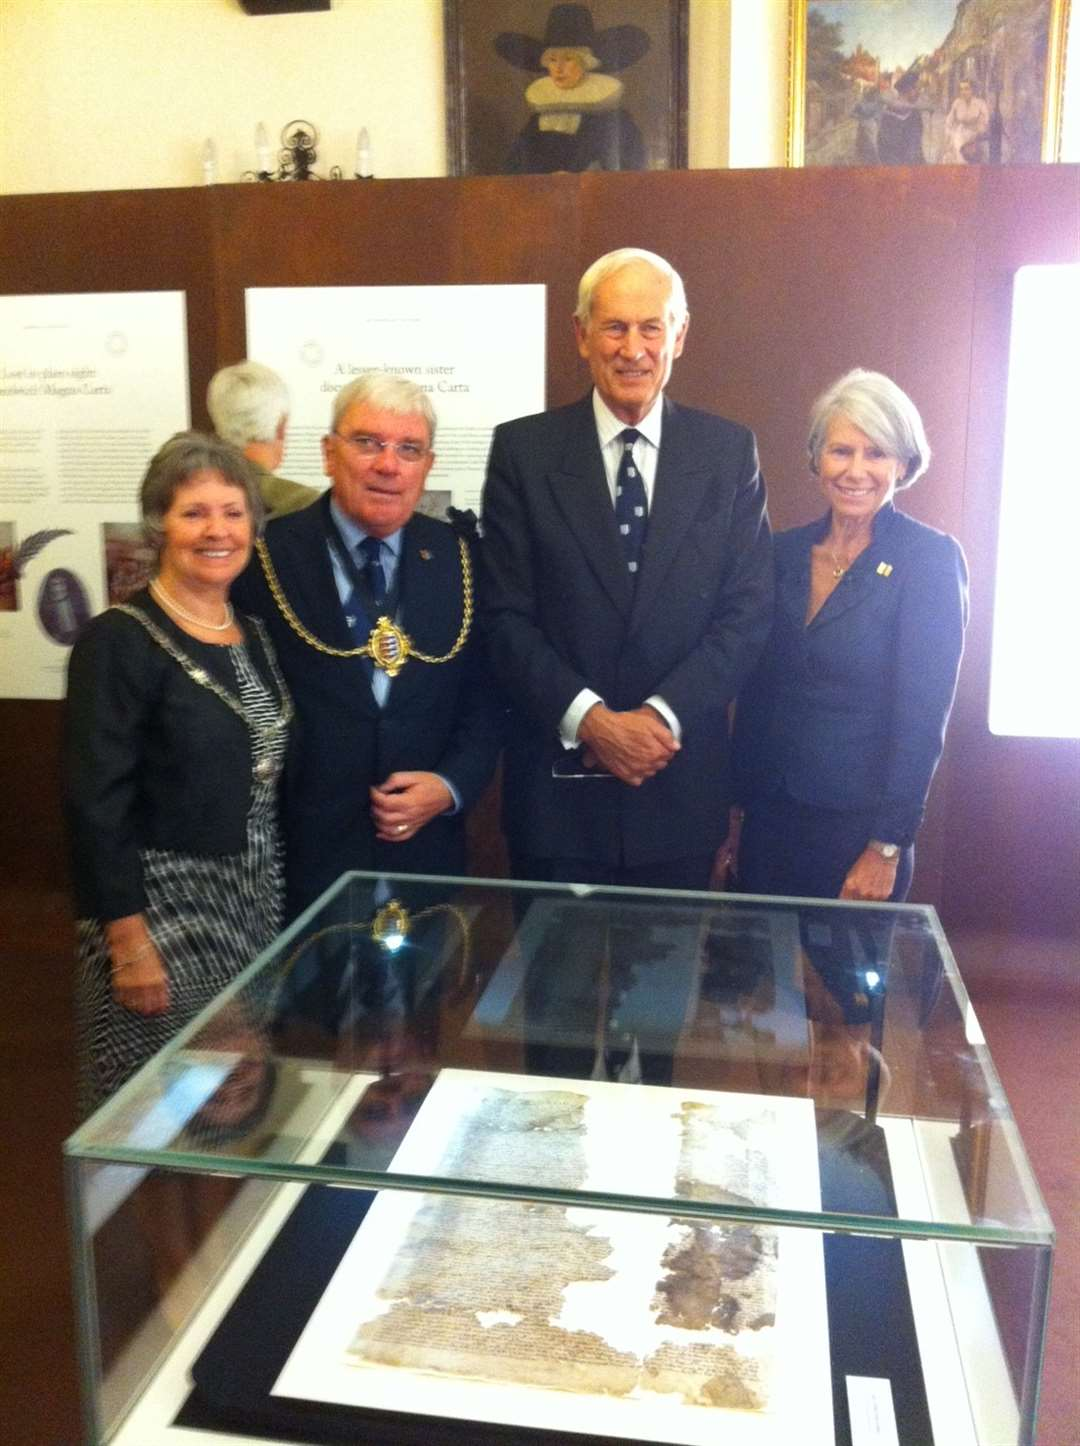 Mayoress of Sandwich, Mayor Paul Graeme, Admiral of the Fleet The Lord Boyce and wife Fleur